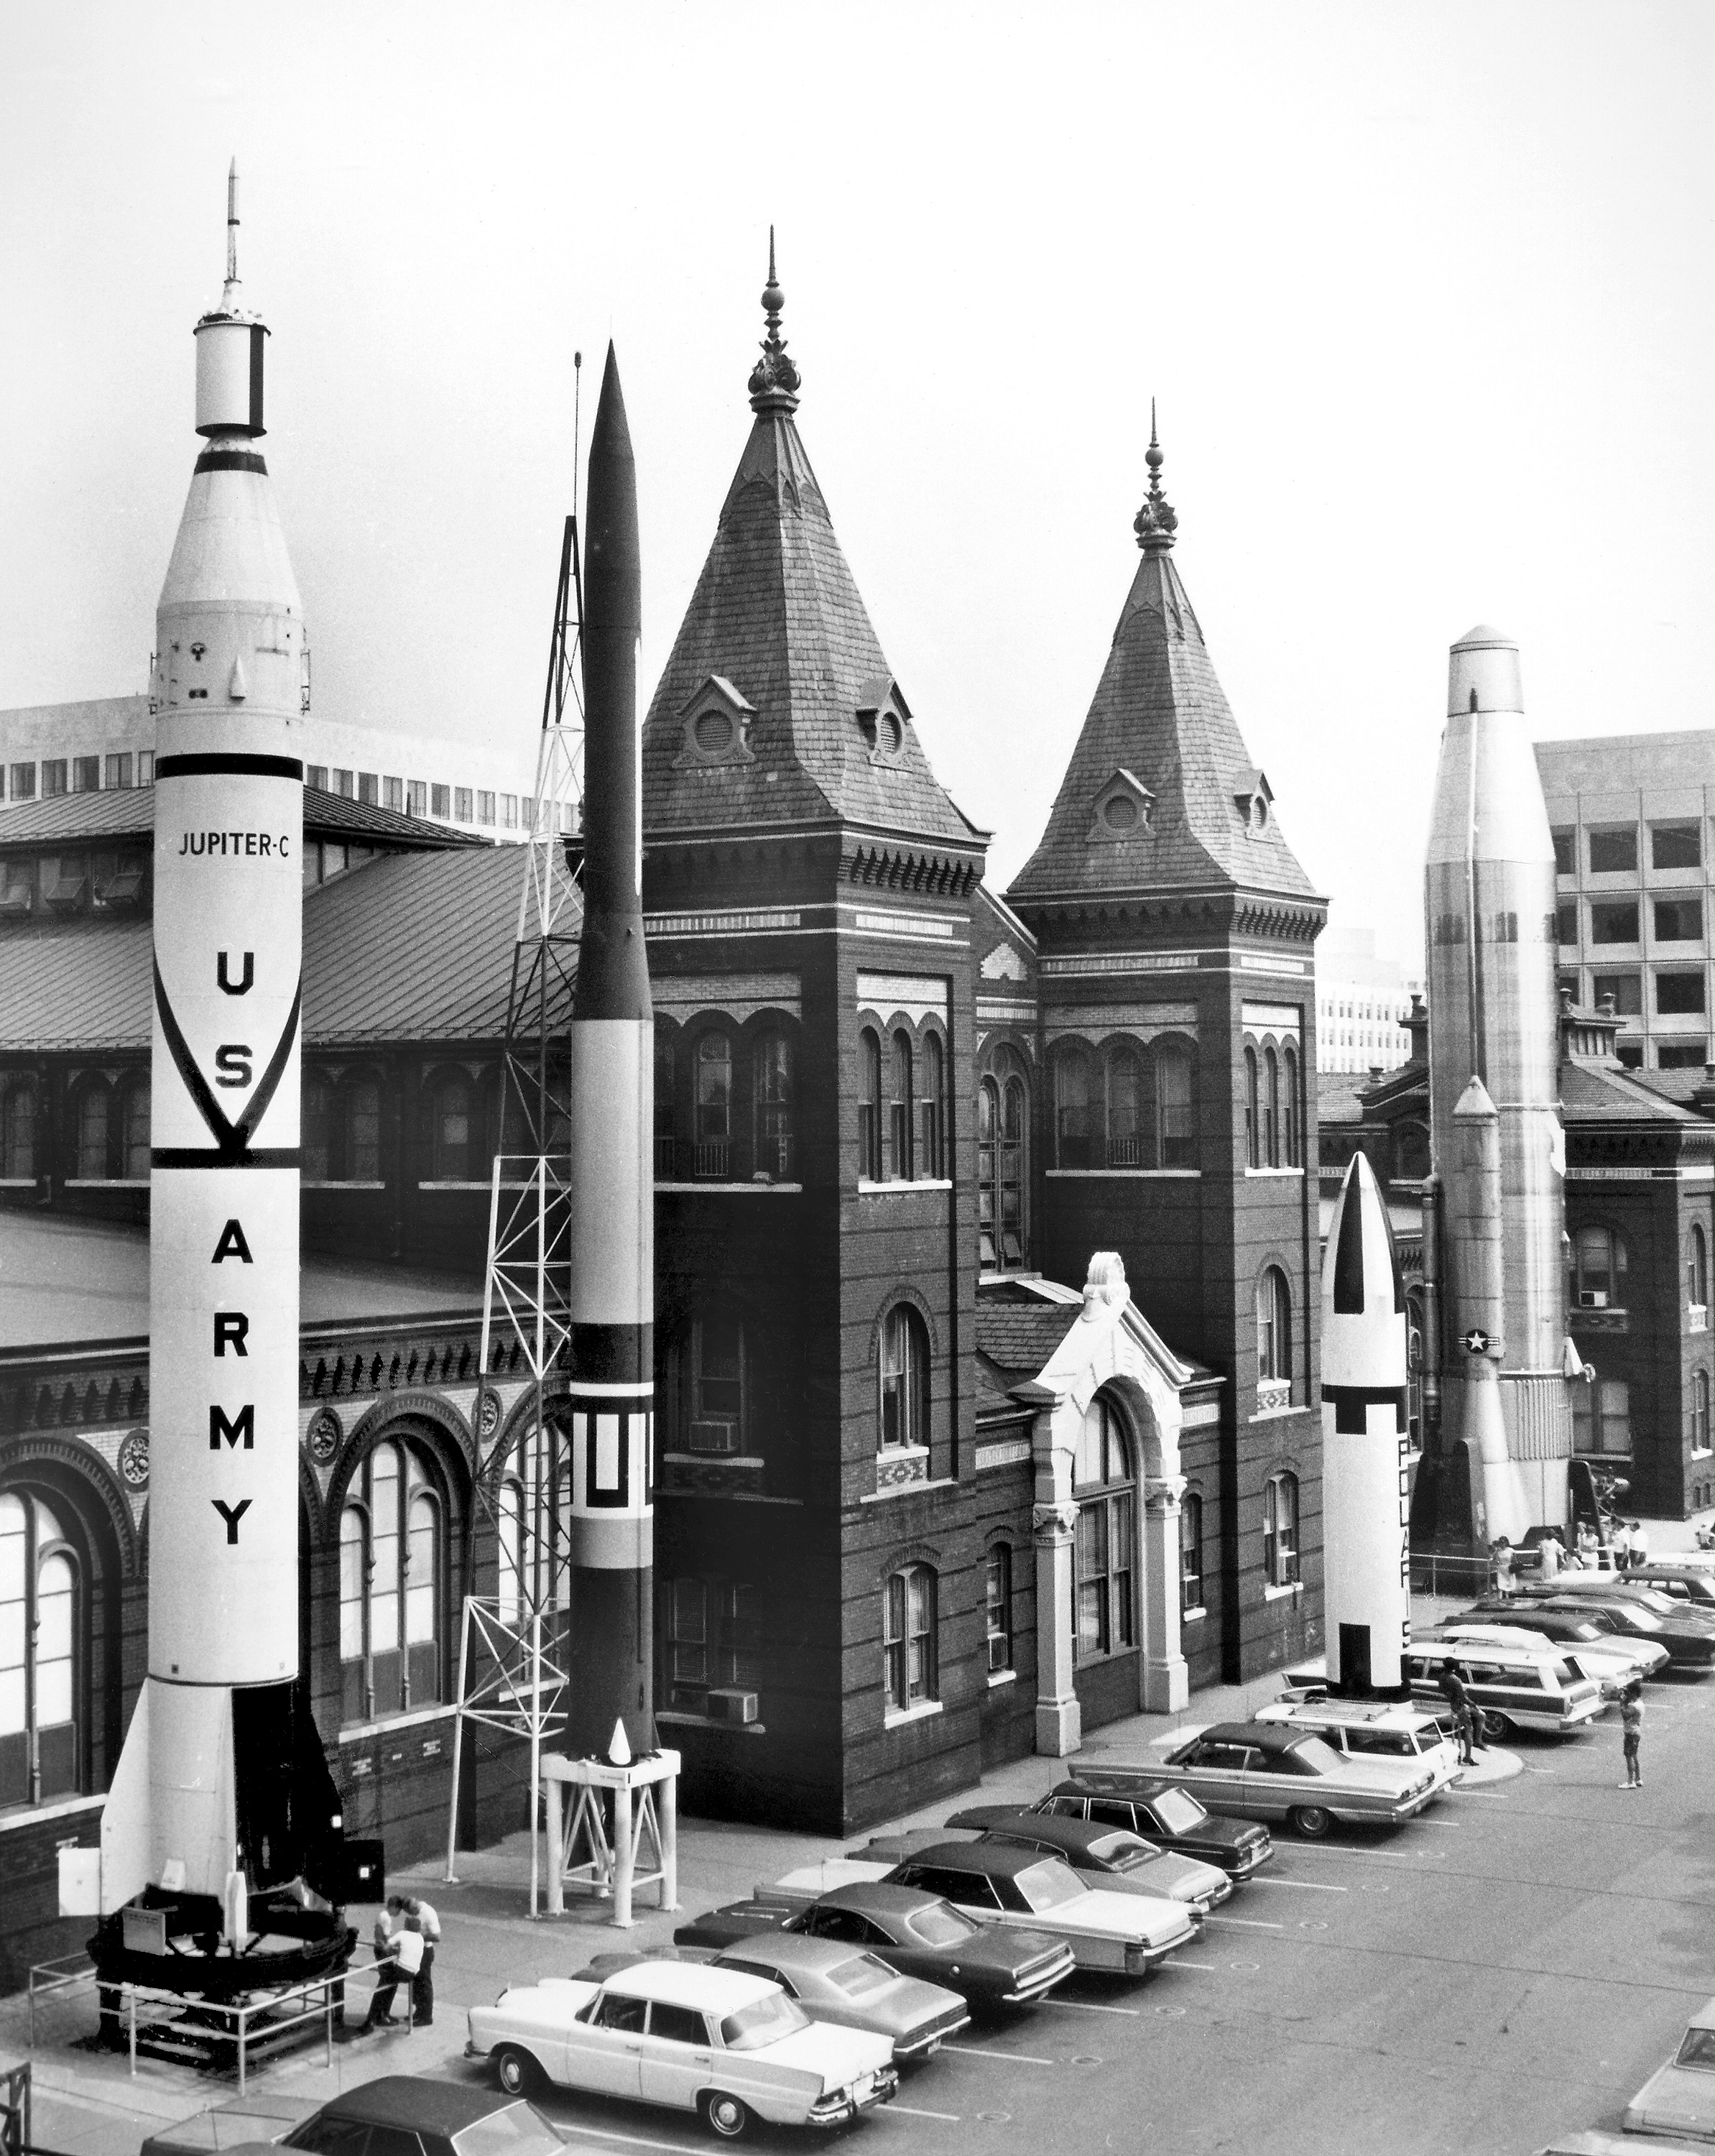 Rocket Row on West Side of A&I Building; 1960s